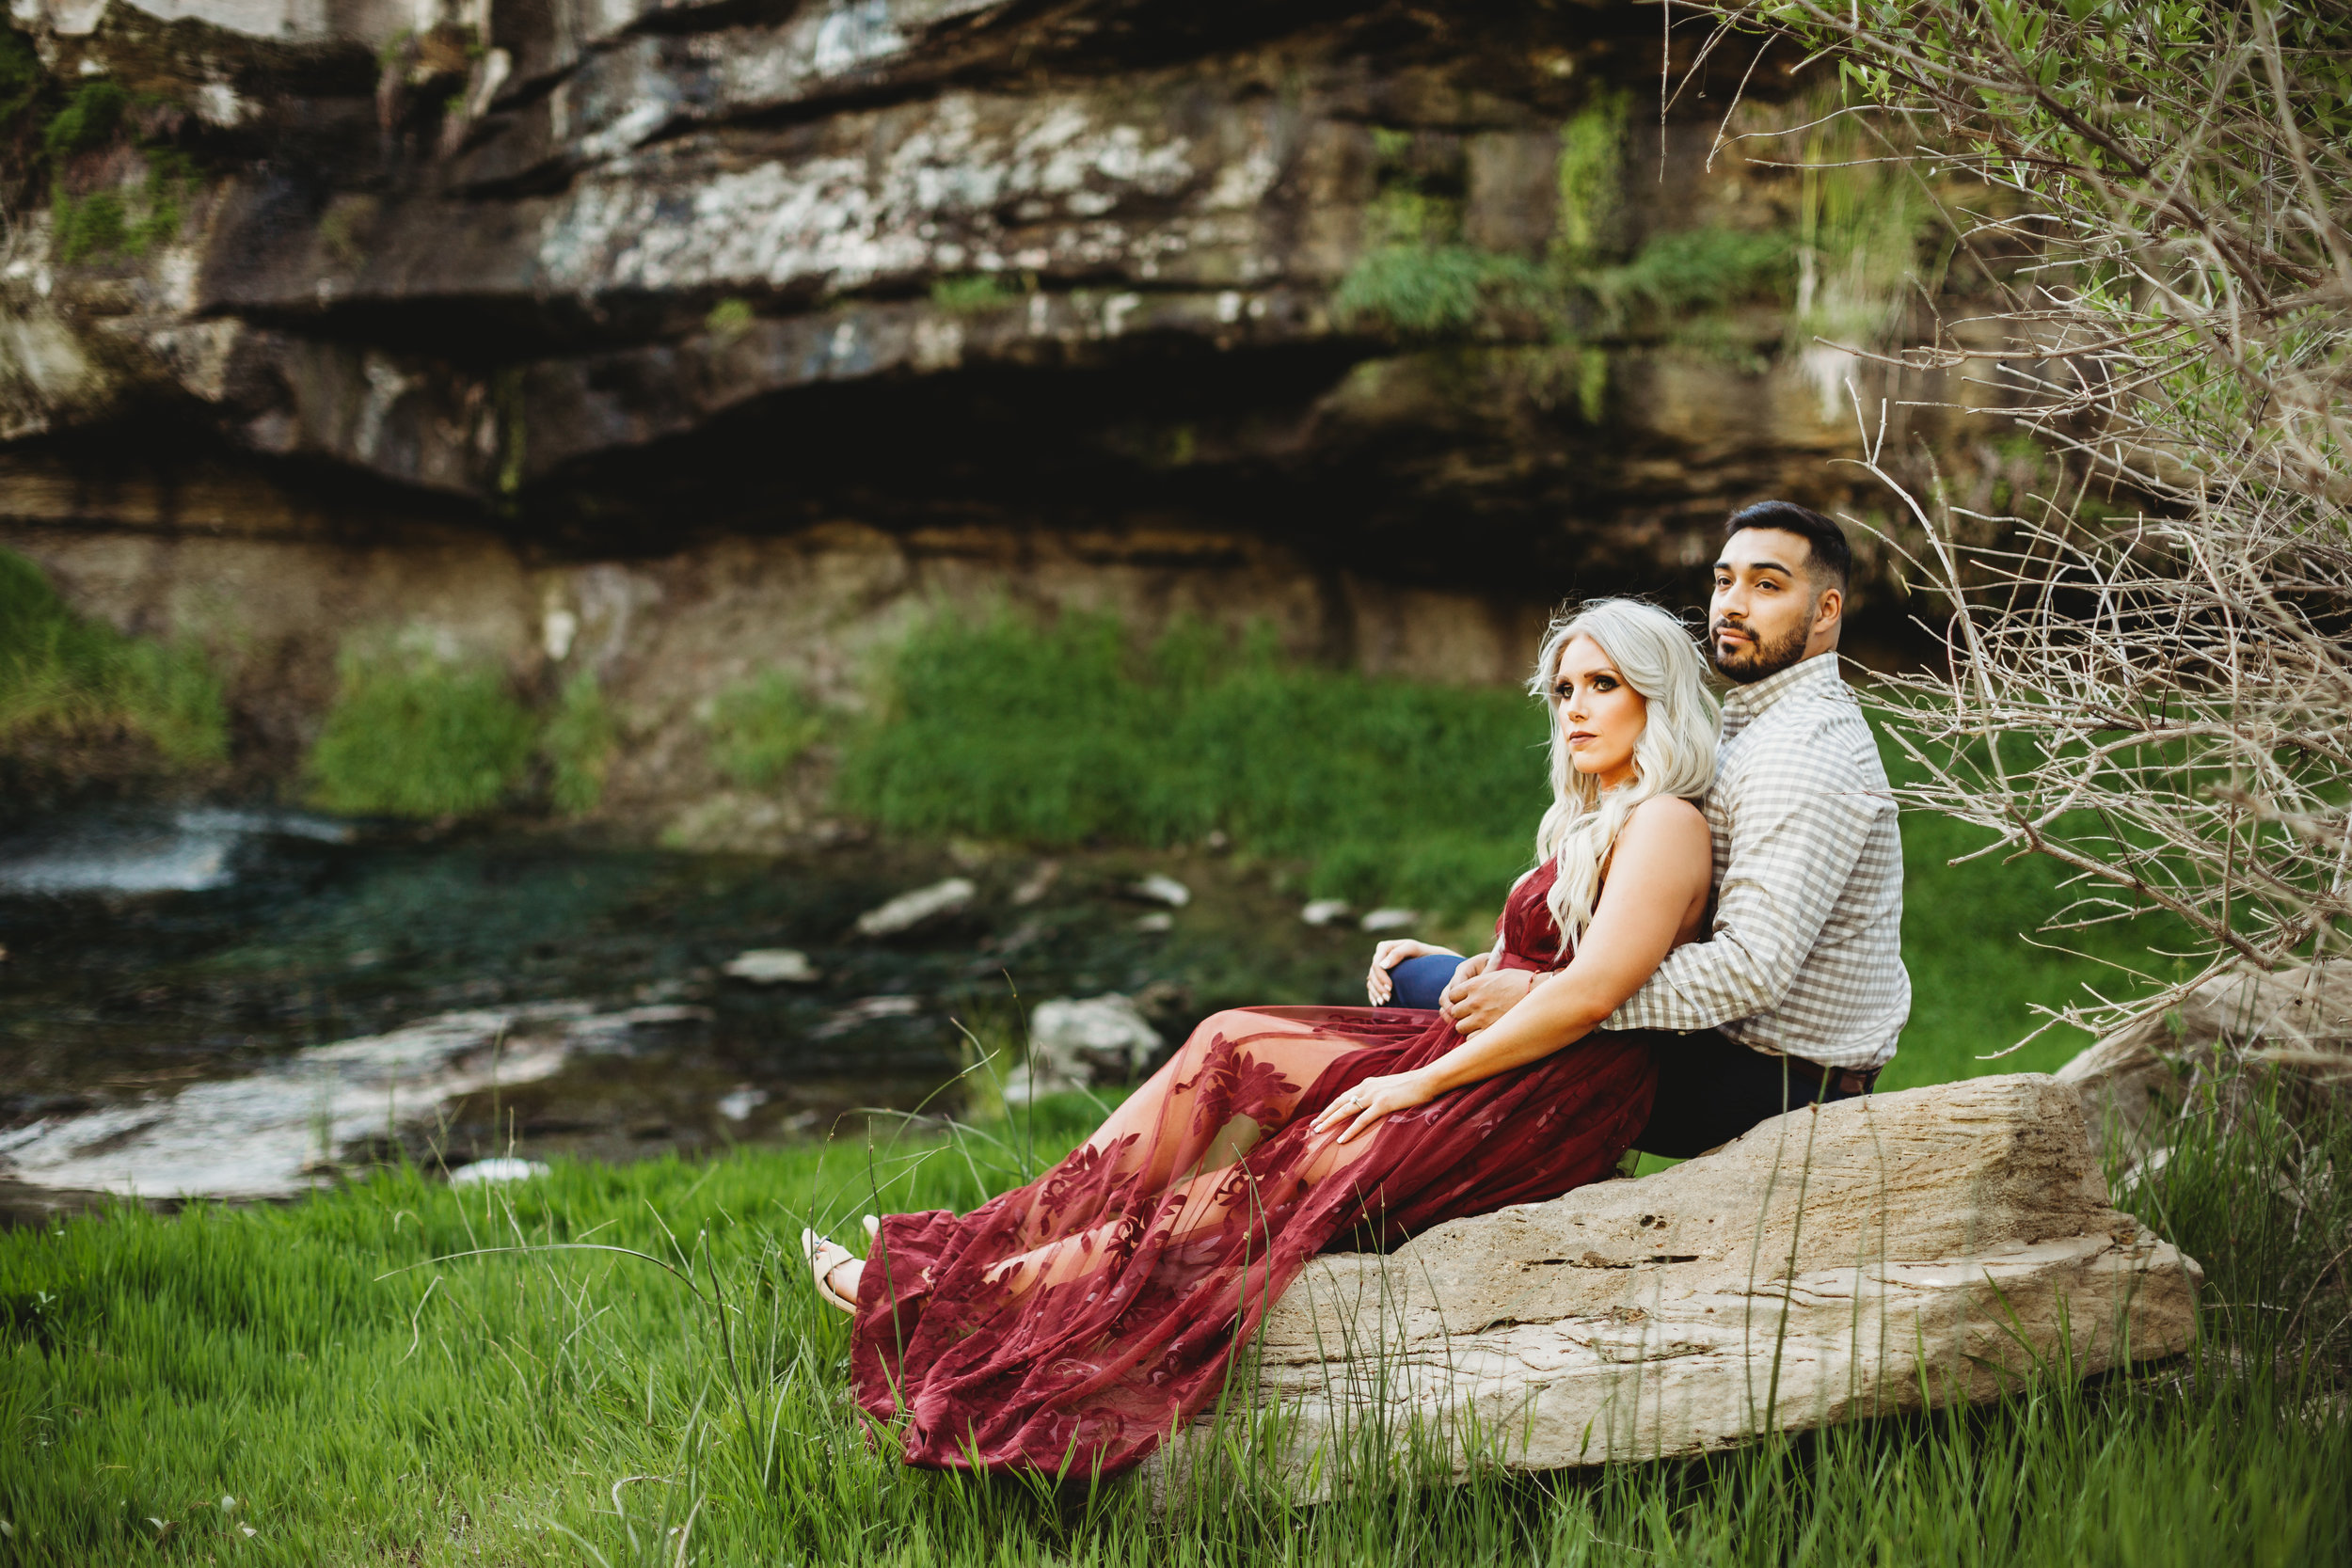 Sitting in the wildlife refuge together with green foliage in the background in ruby red dress #engagementphotos #riverfalls #engaged #personality #amarillotexas #engagementphotographer #lifestylephotos #amarillophotographer #locationchoice #texasengagementphotos #engagment #tealawardphotography #wildliferefuge